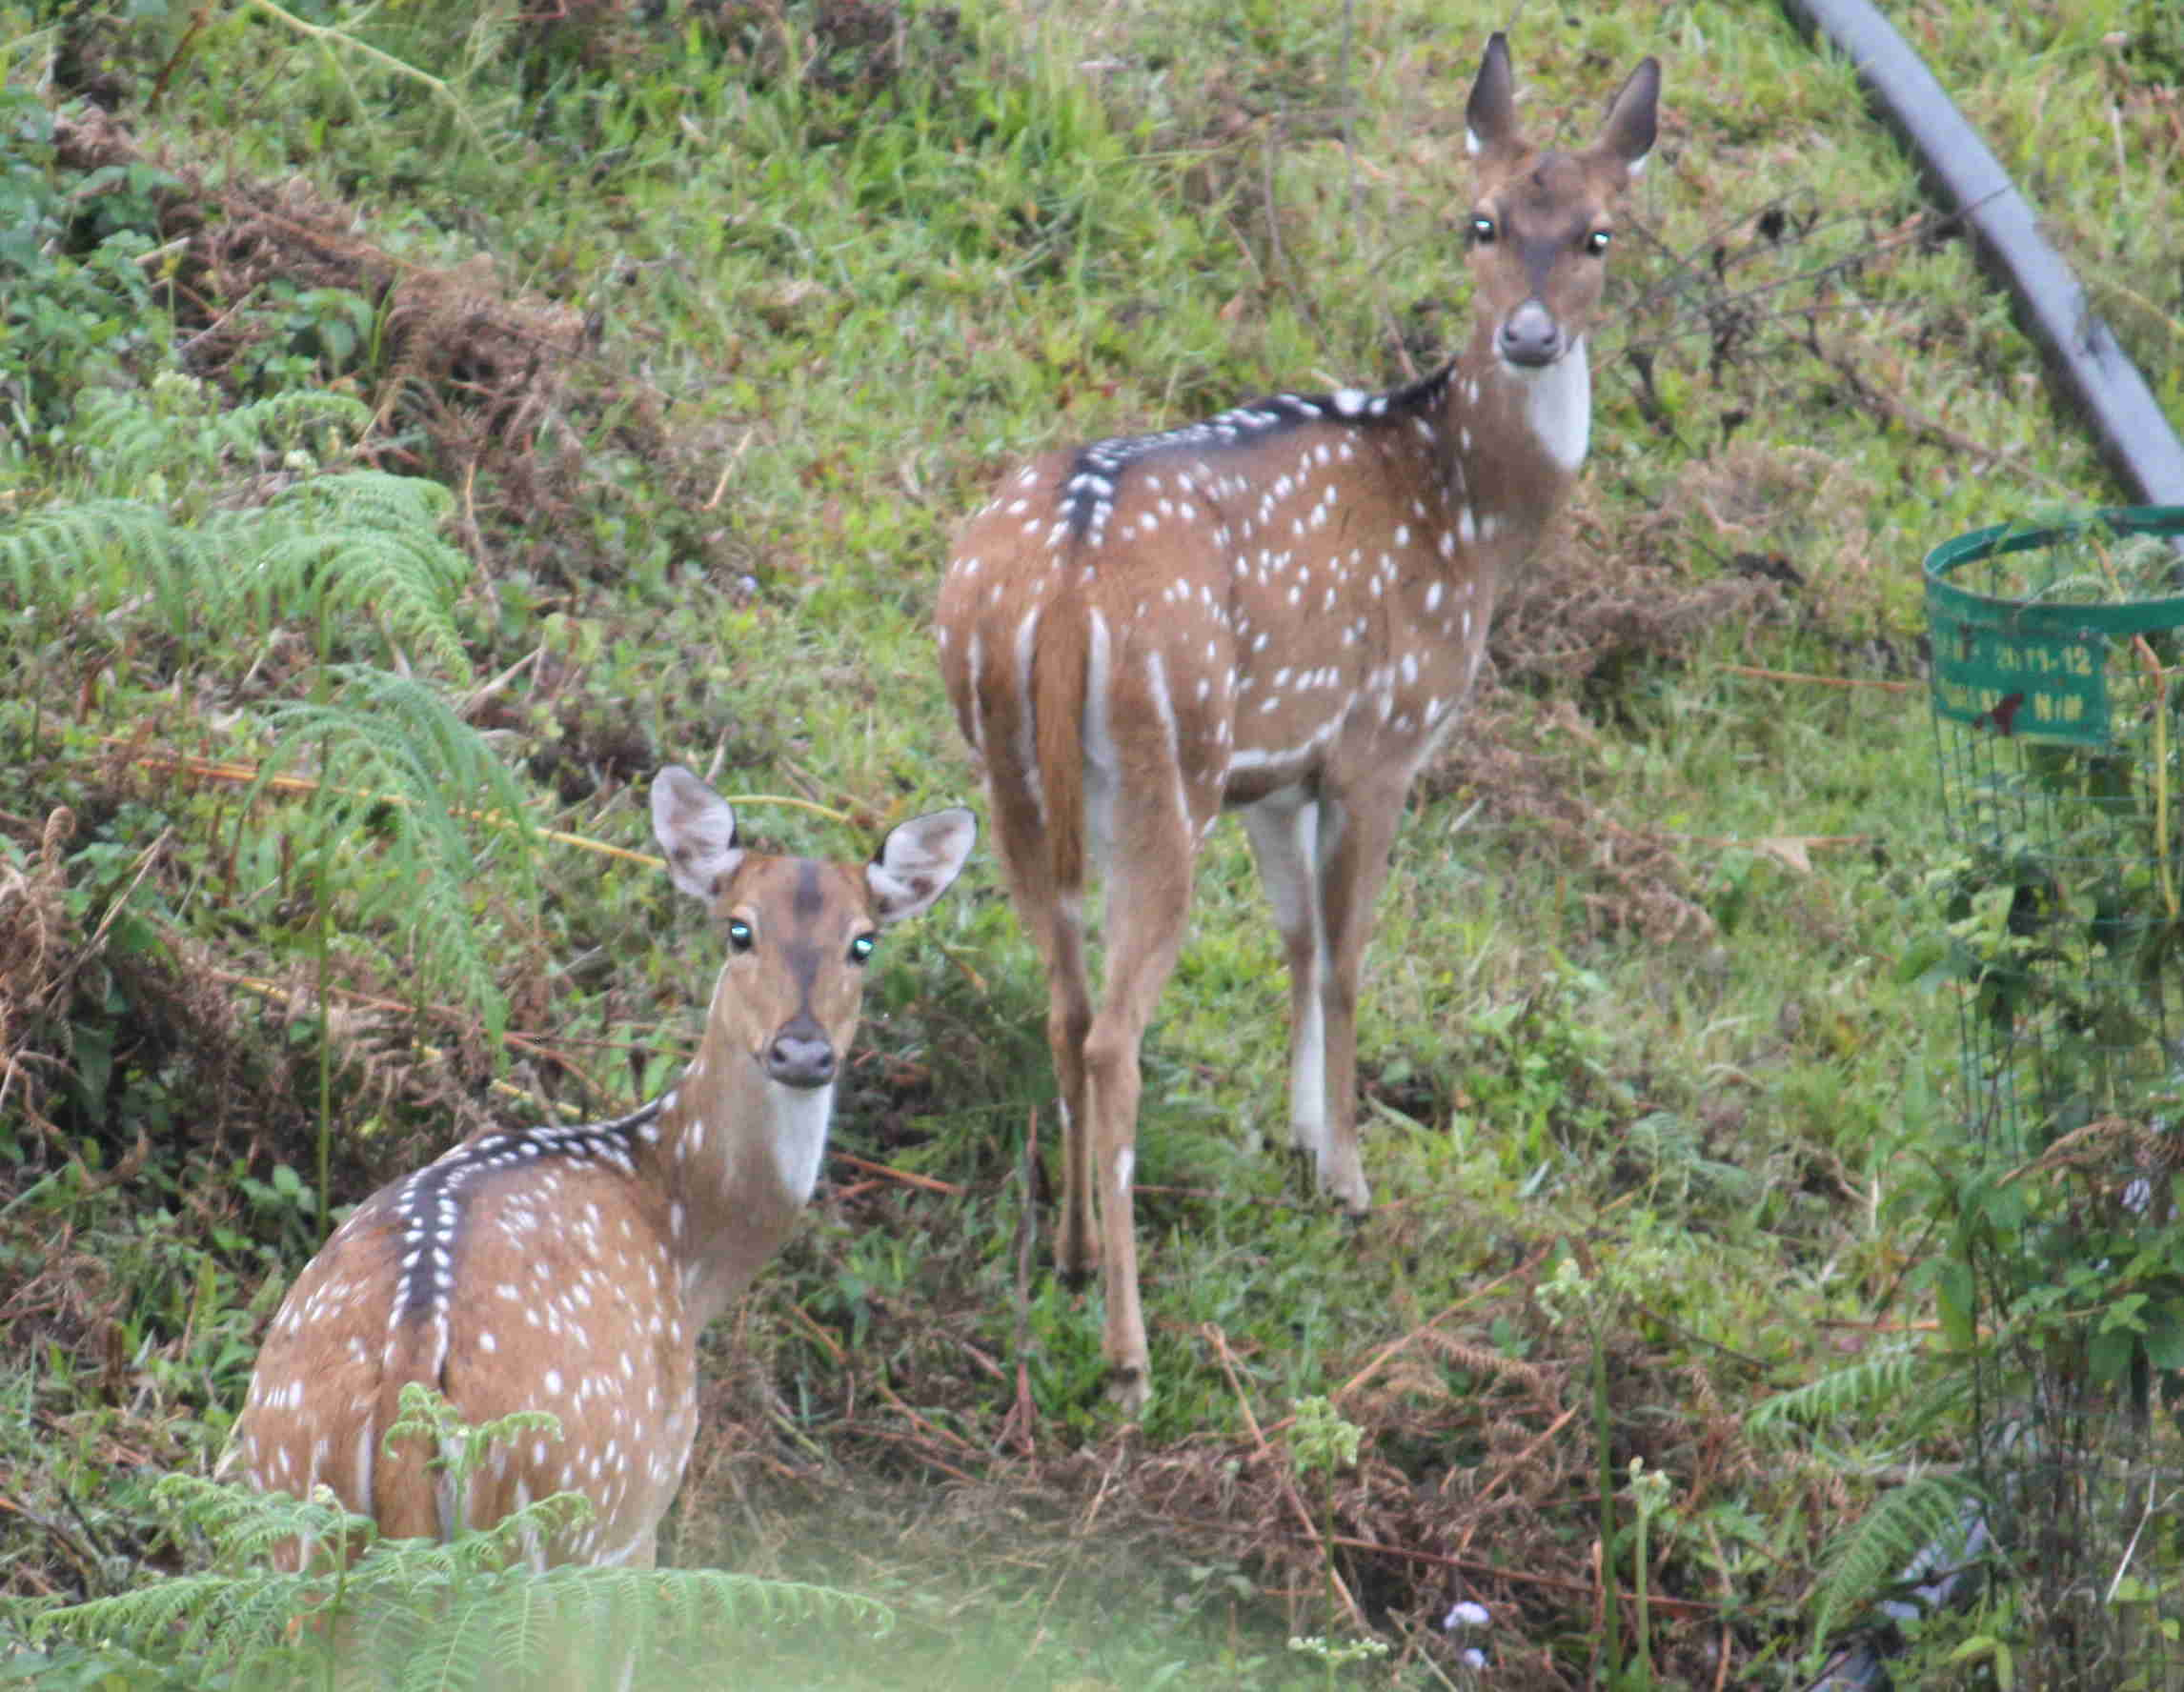 Spotted Deer at Acres Wild Cheesemaking Farmstay, Coonoor